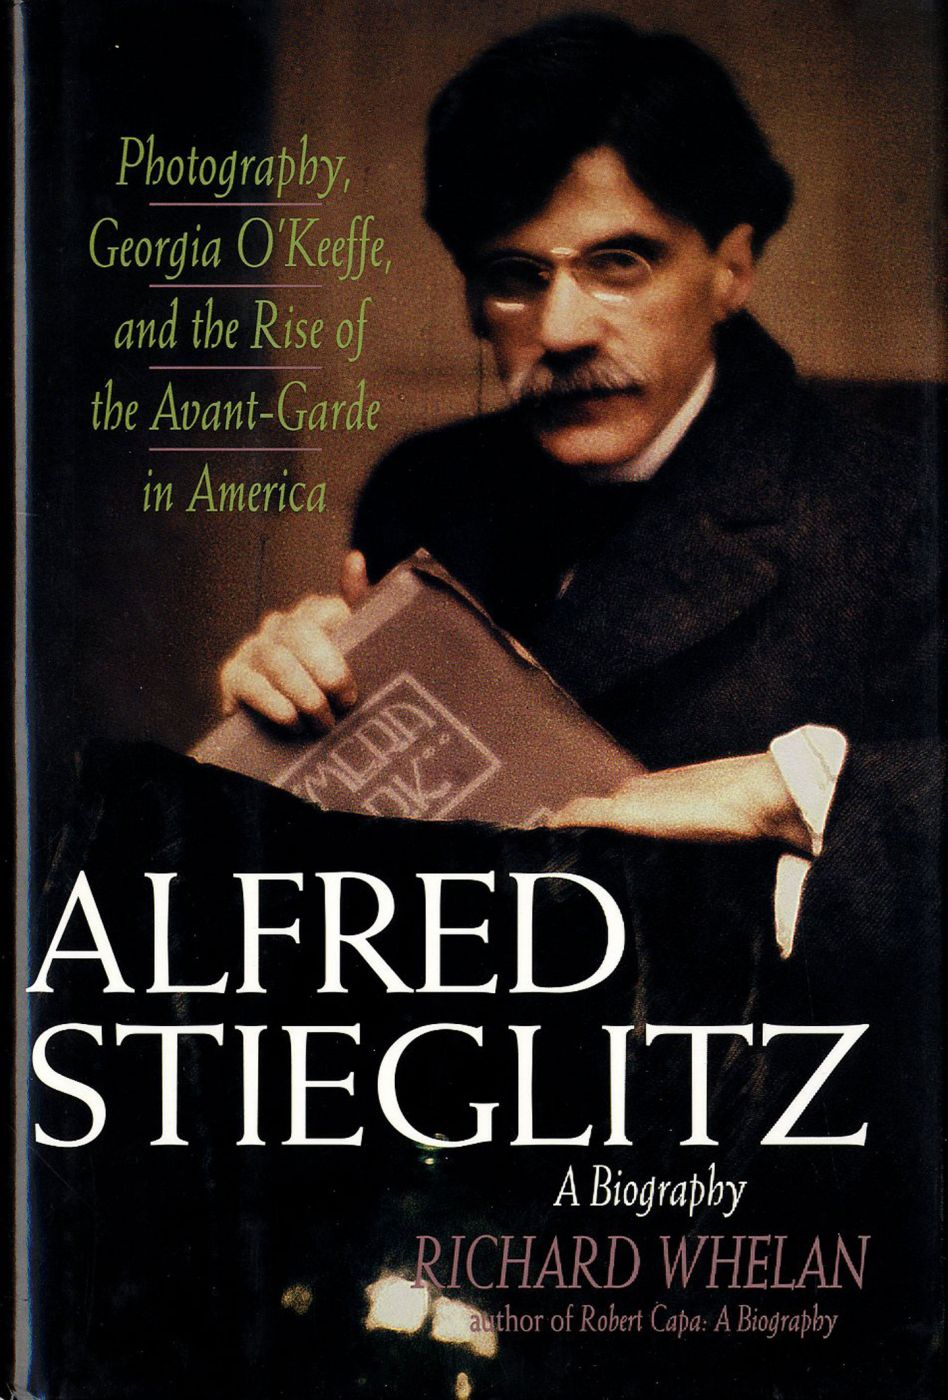 Alfred Stieglitz: A Biography - Photography, Georgia O'Keeffe, and the Rise of the Avant-Garde in America